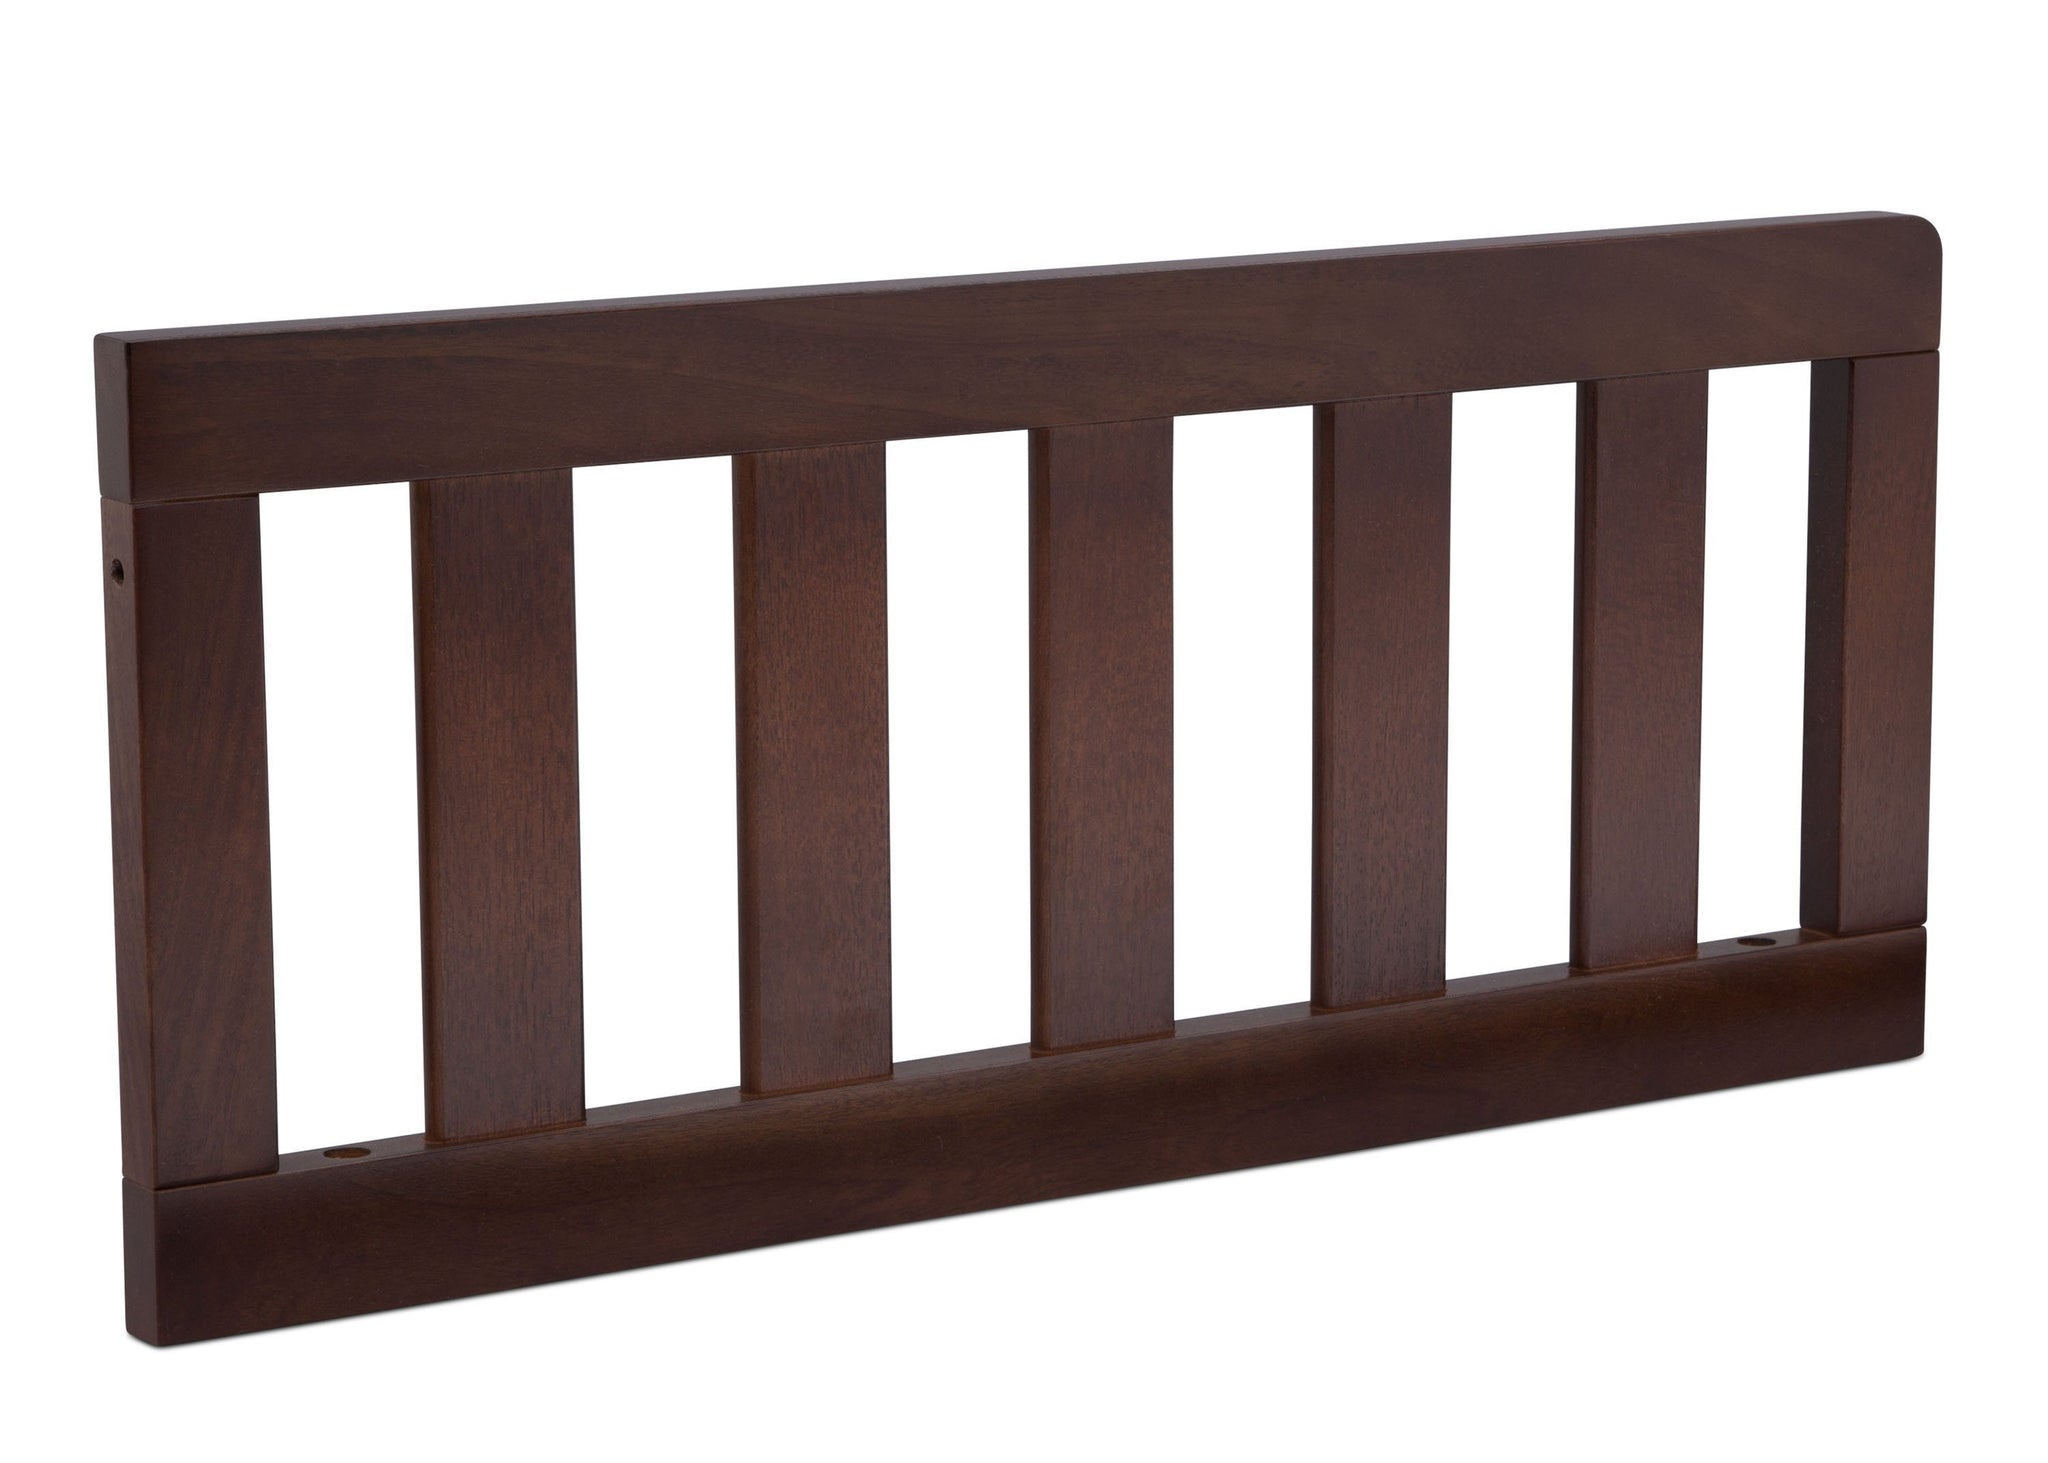 Serta Daybed/Toddler Guardrail Kit (707726) Walnut Espresso (1324) Angle c4c